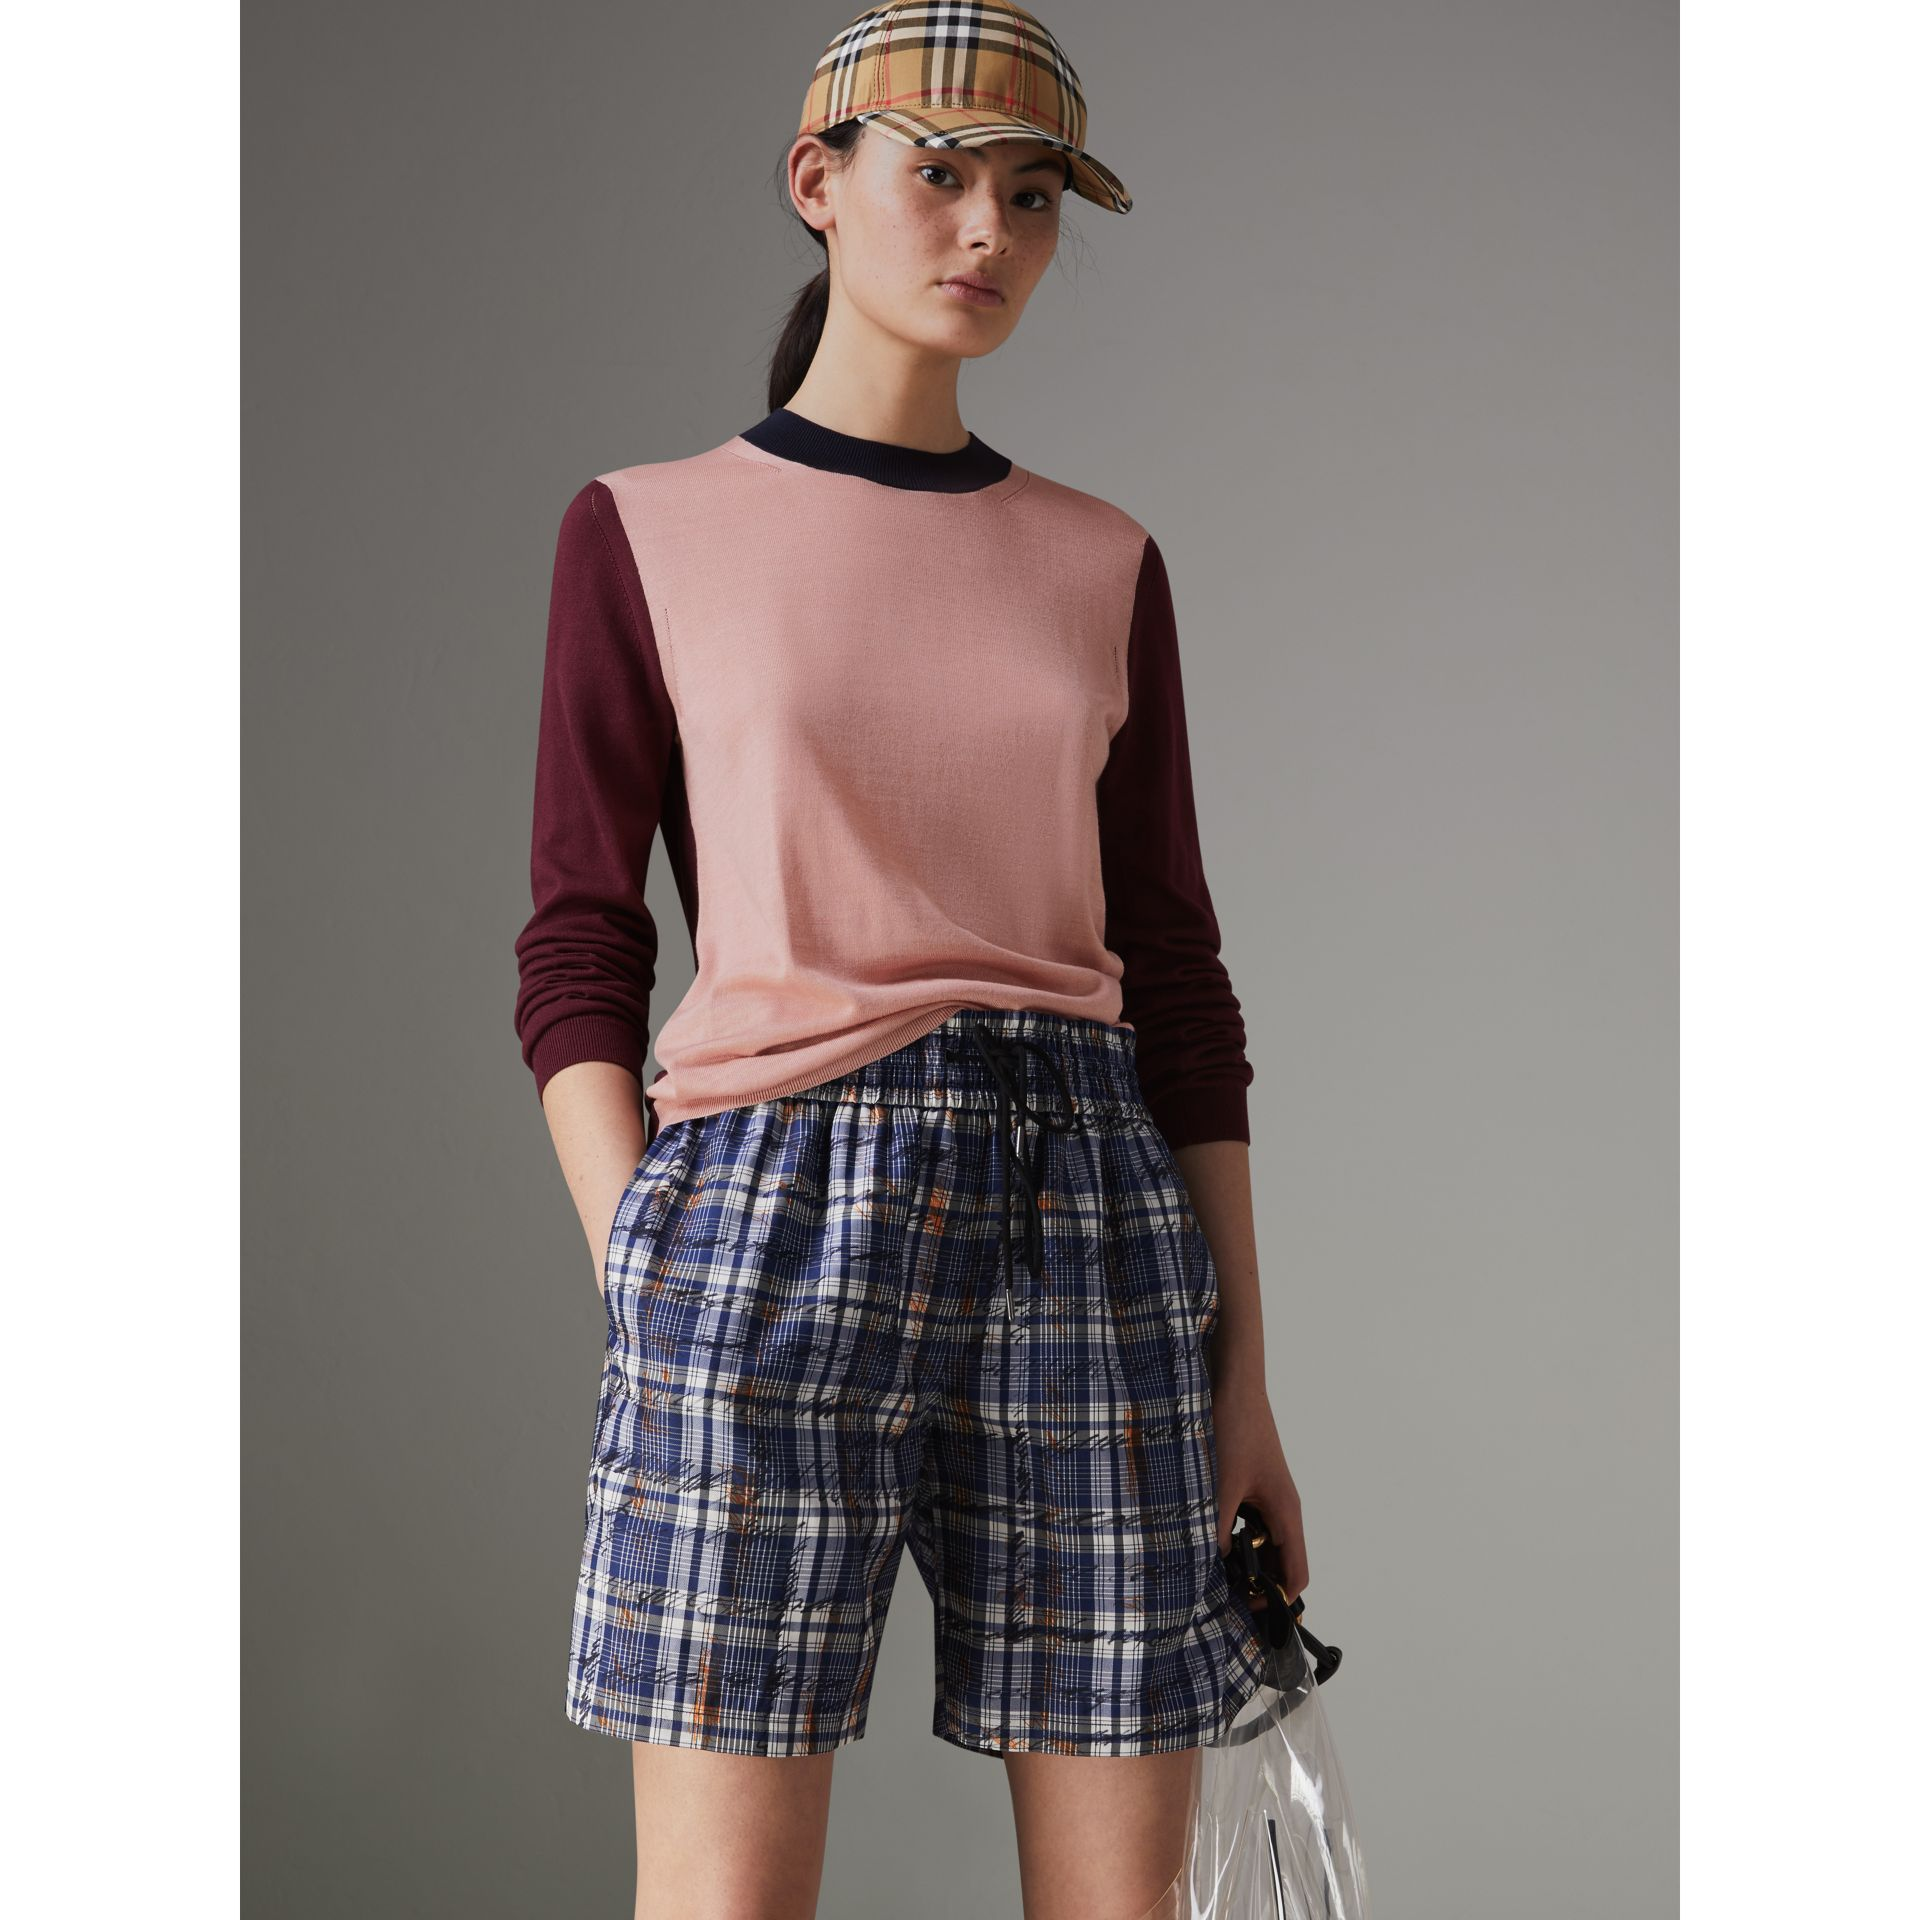 Colour Block Silk Cashmere Sweater in Pink Apricot - Women | Burberry United Kingdom - gallery image 4